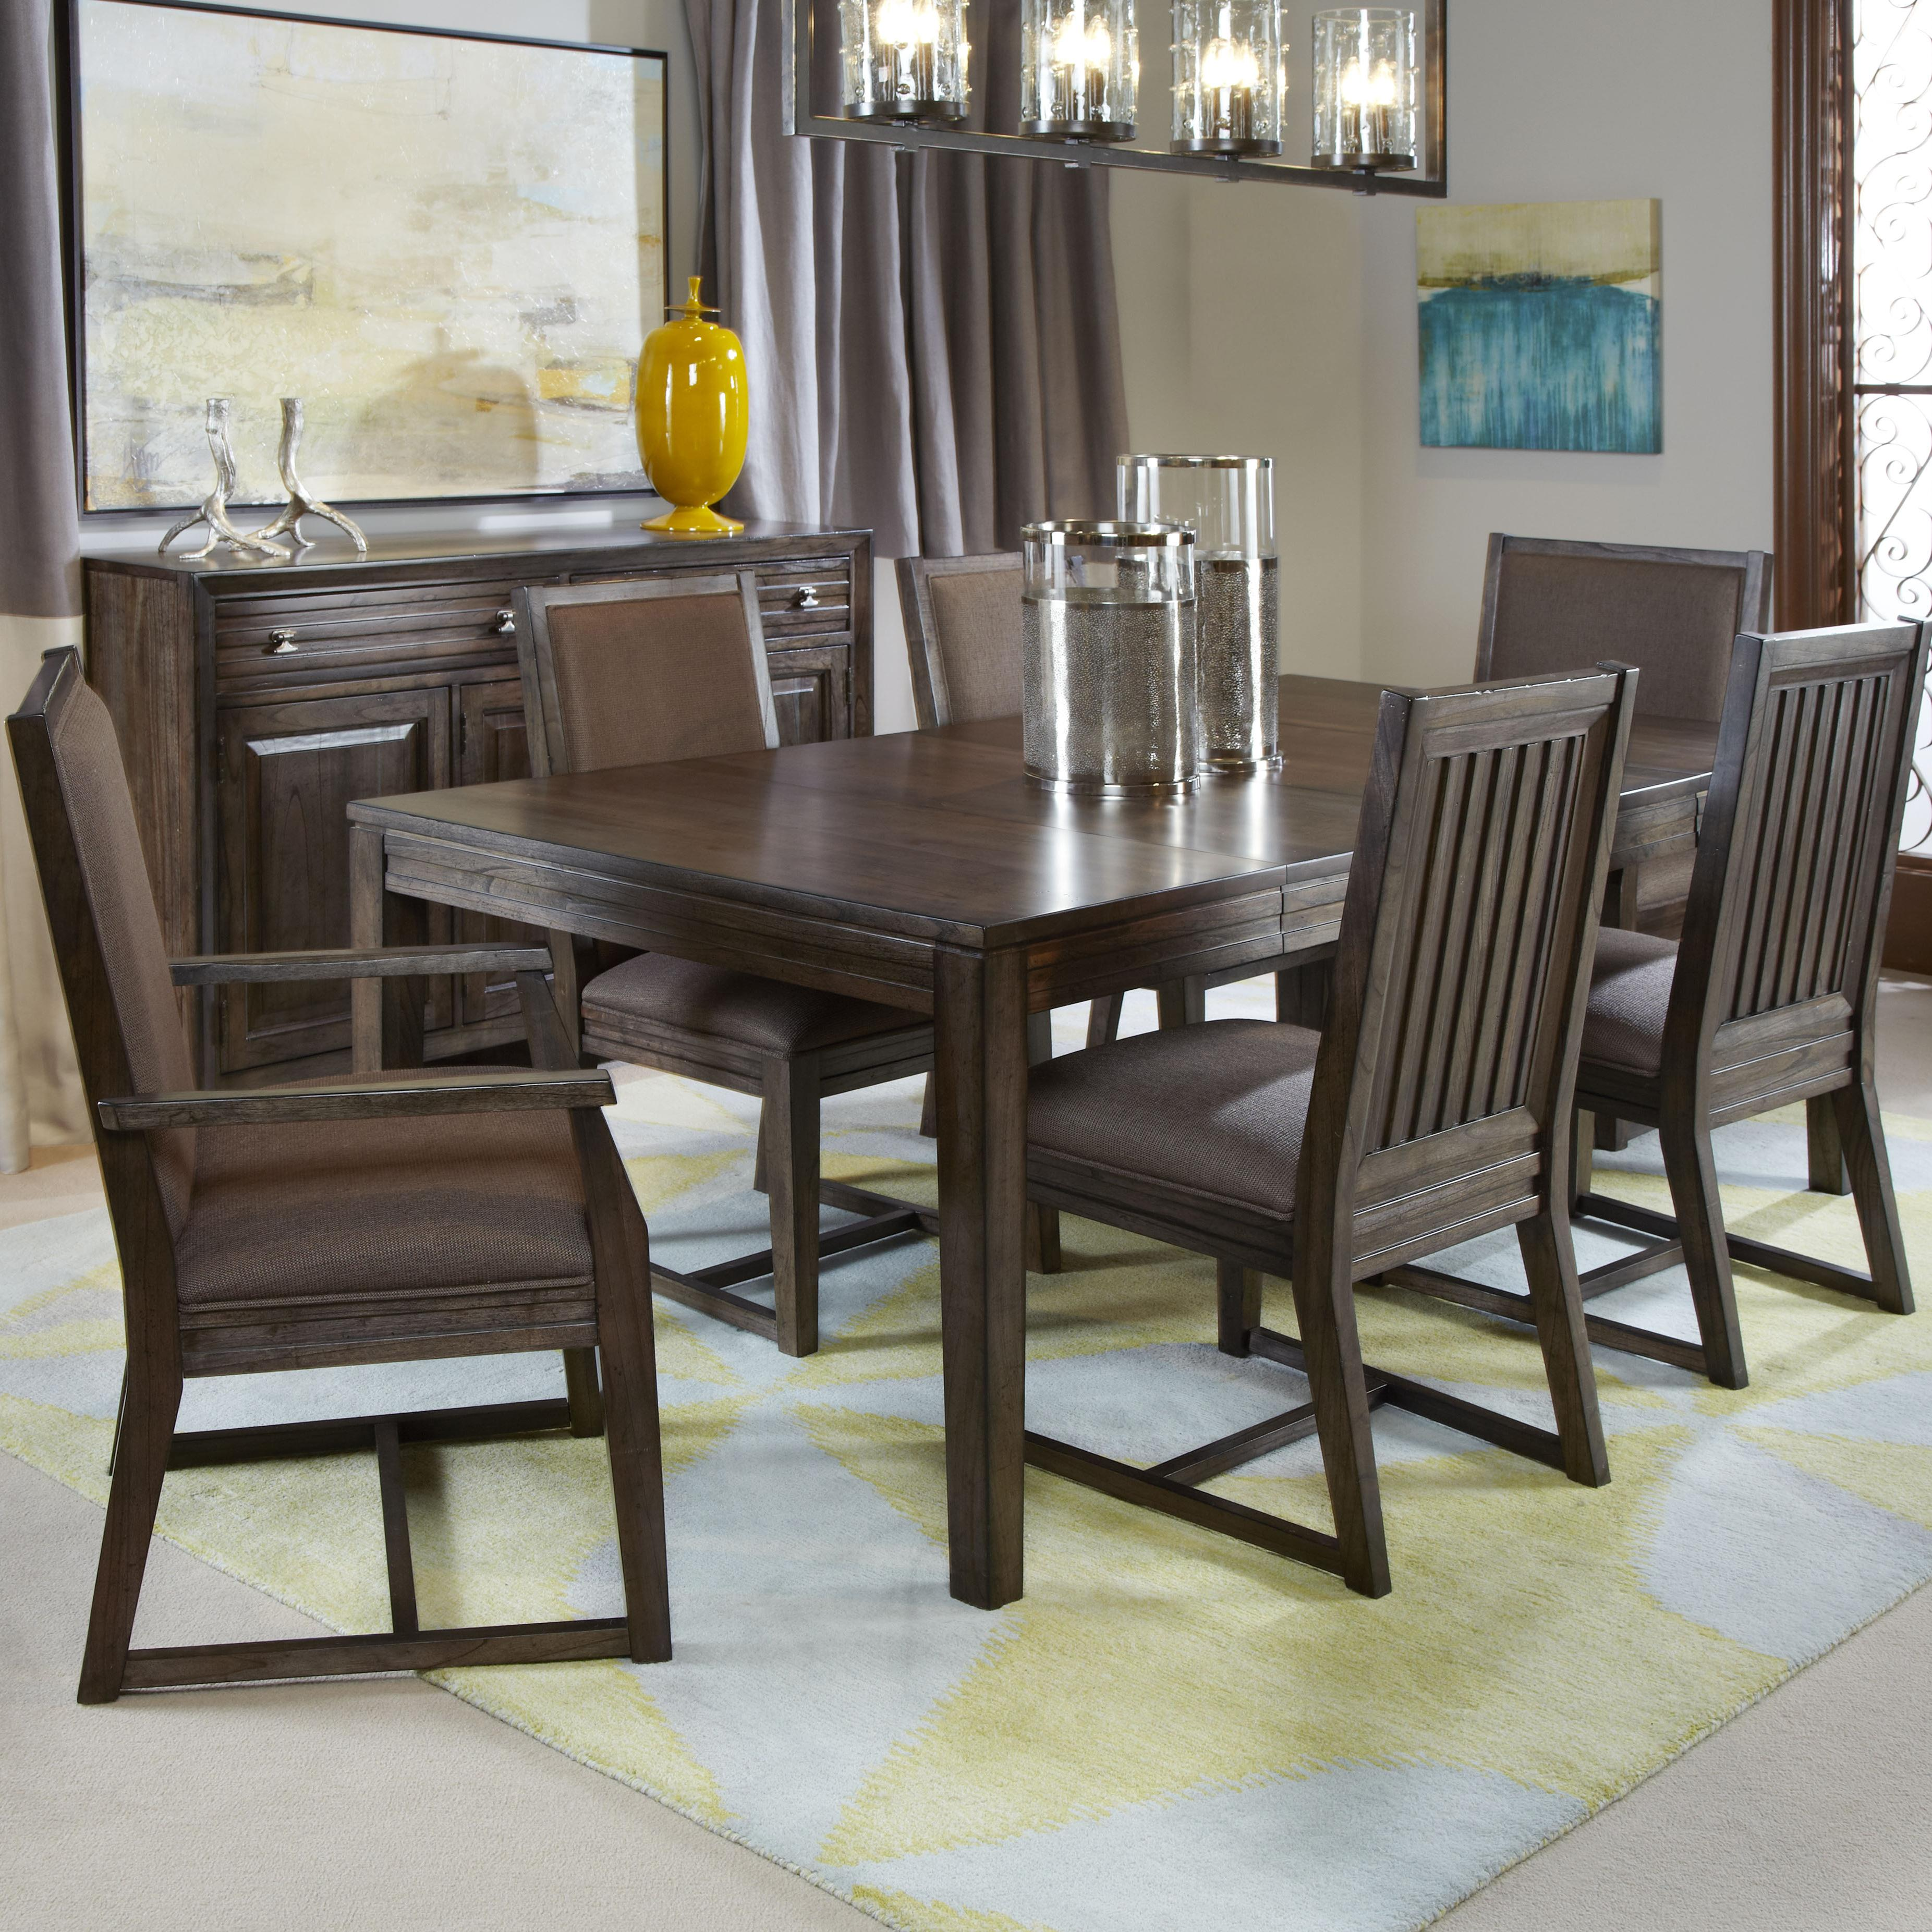 Kincaid furniture montreat seven piece formal dining set for Formal dining chairs